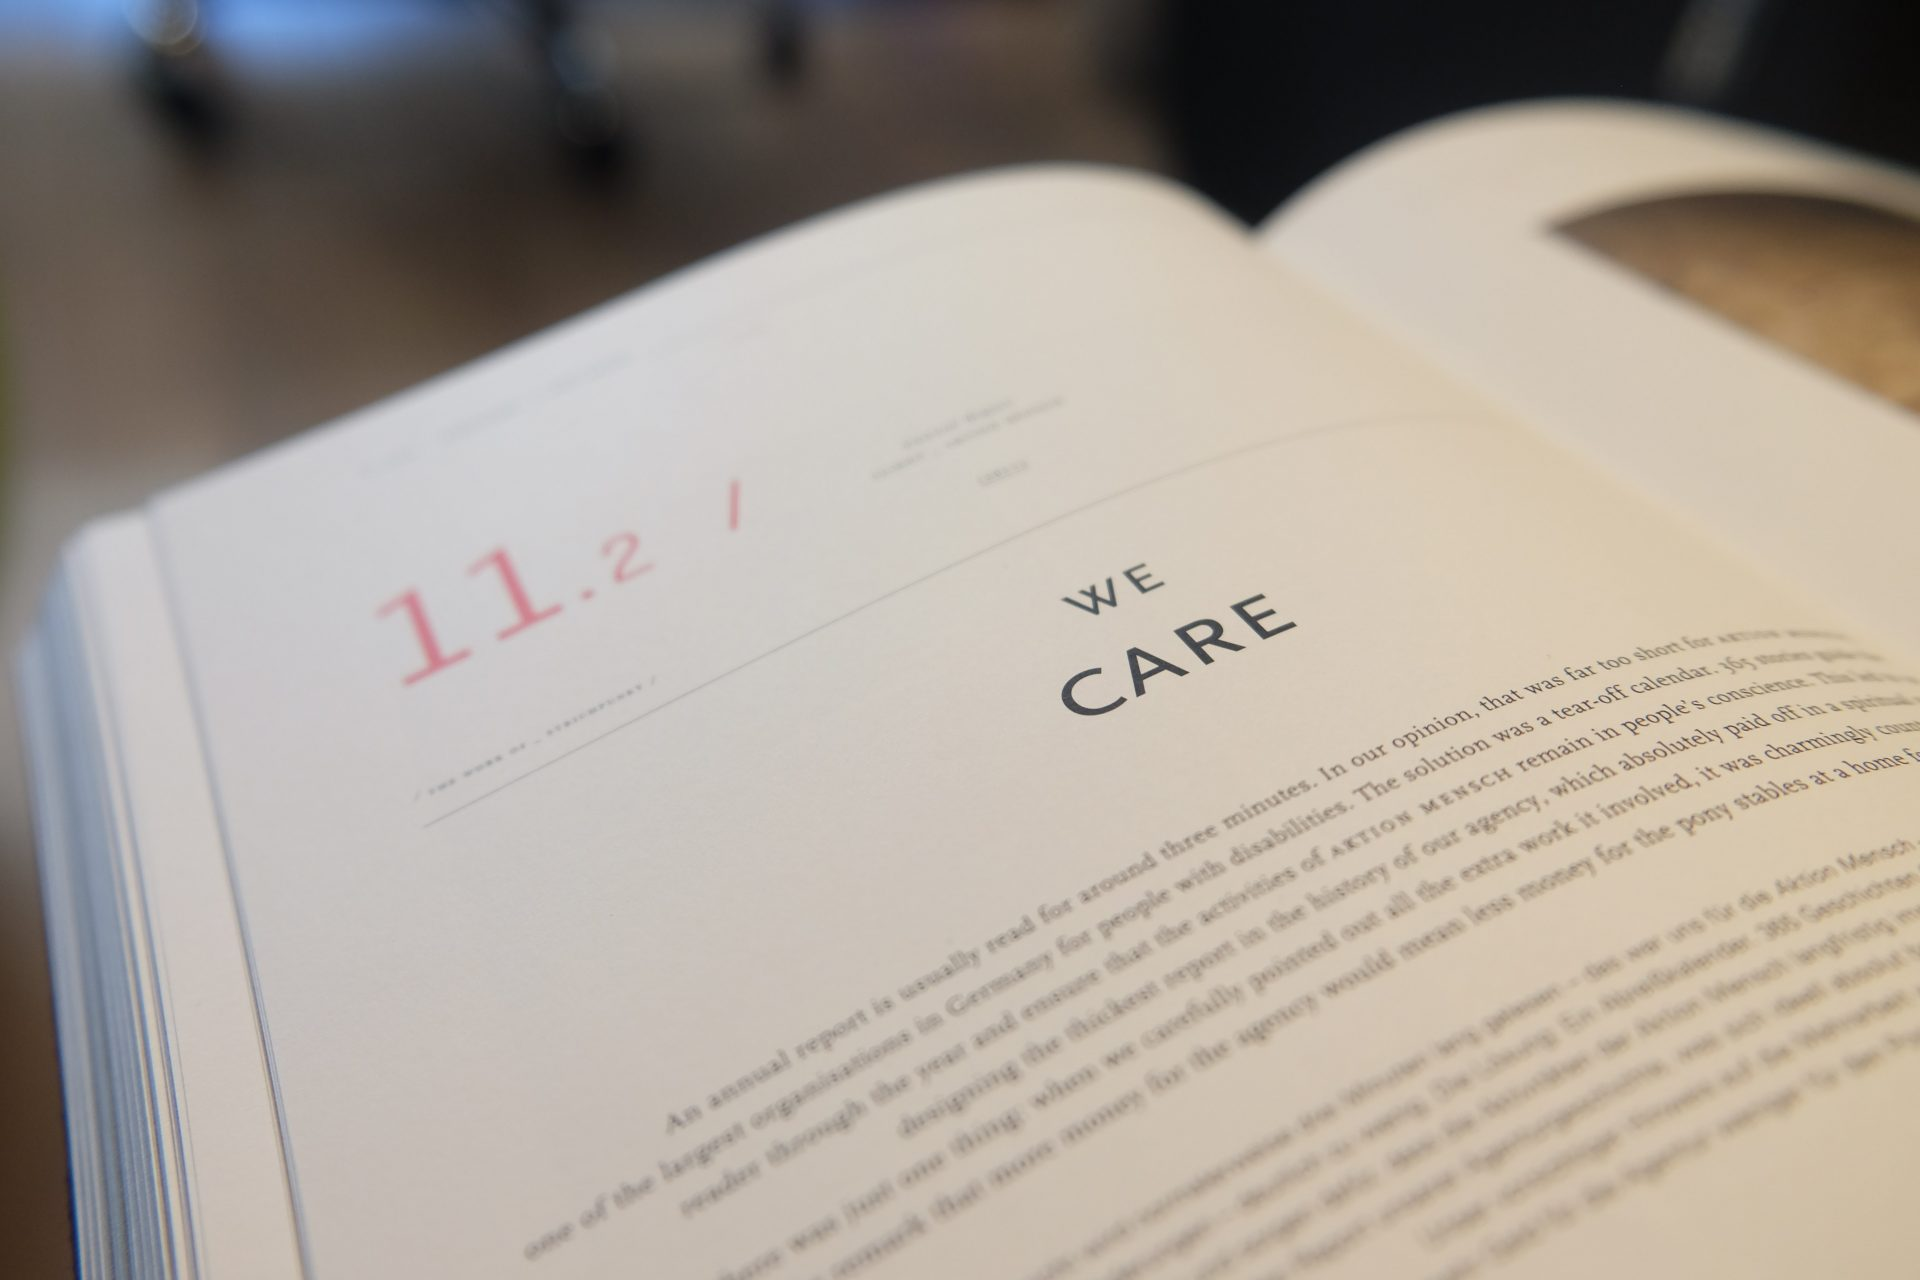 care sector book